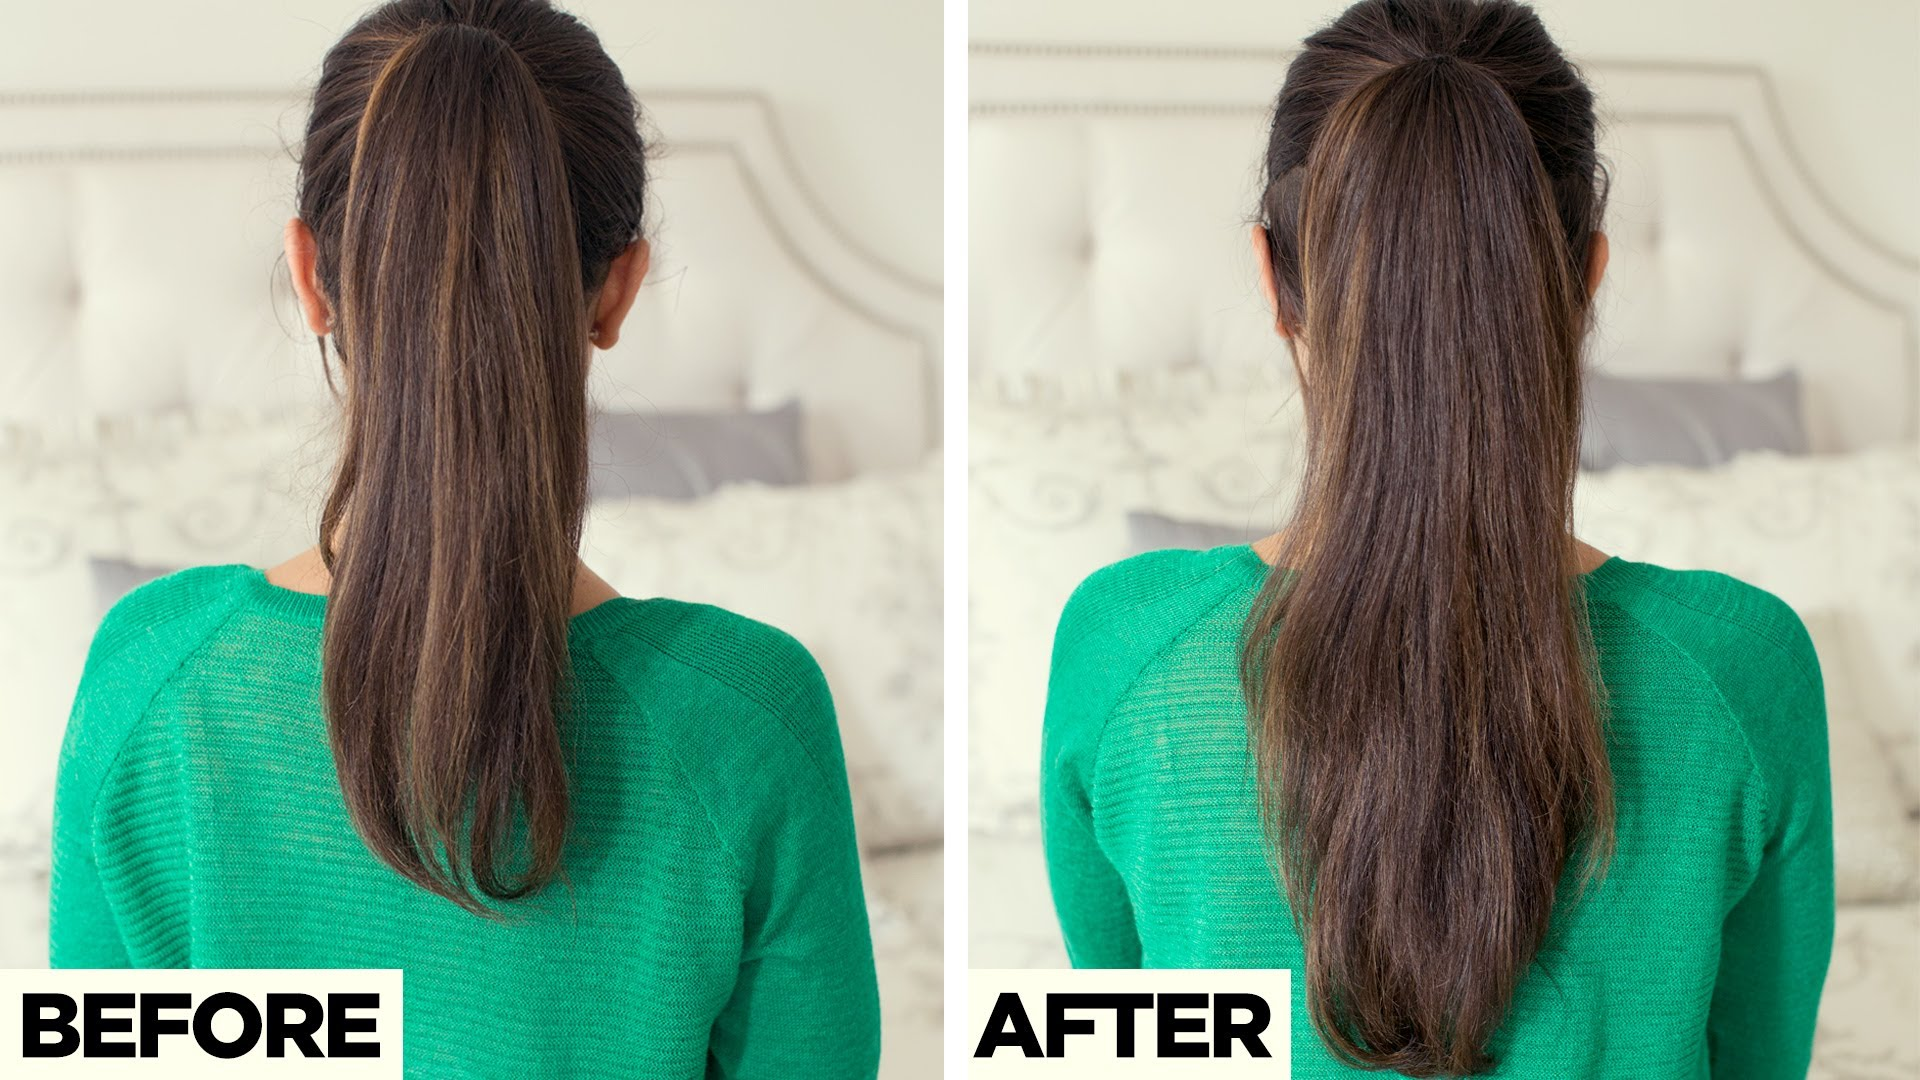 How to Make Your Hair Look Longer in Just 2 Minutes!